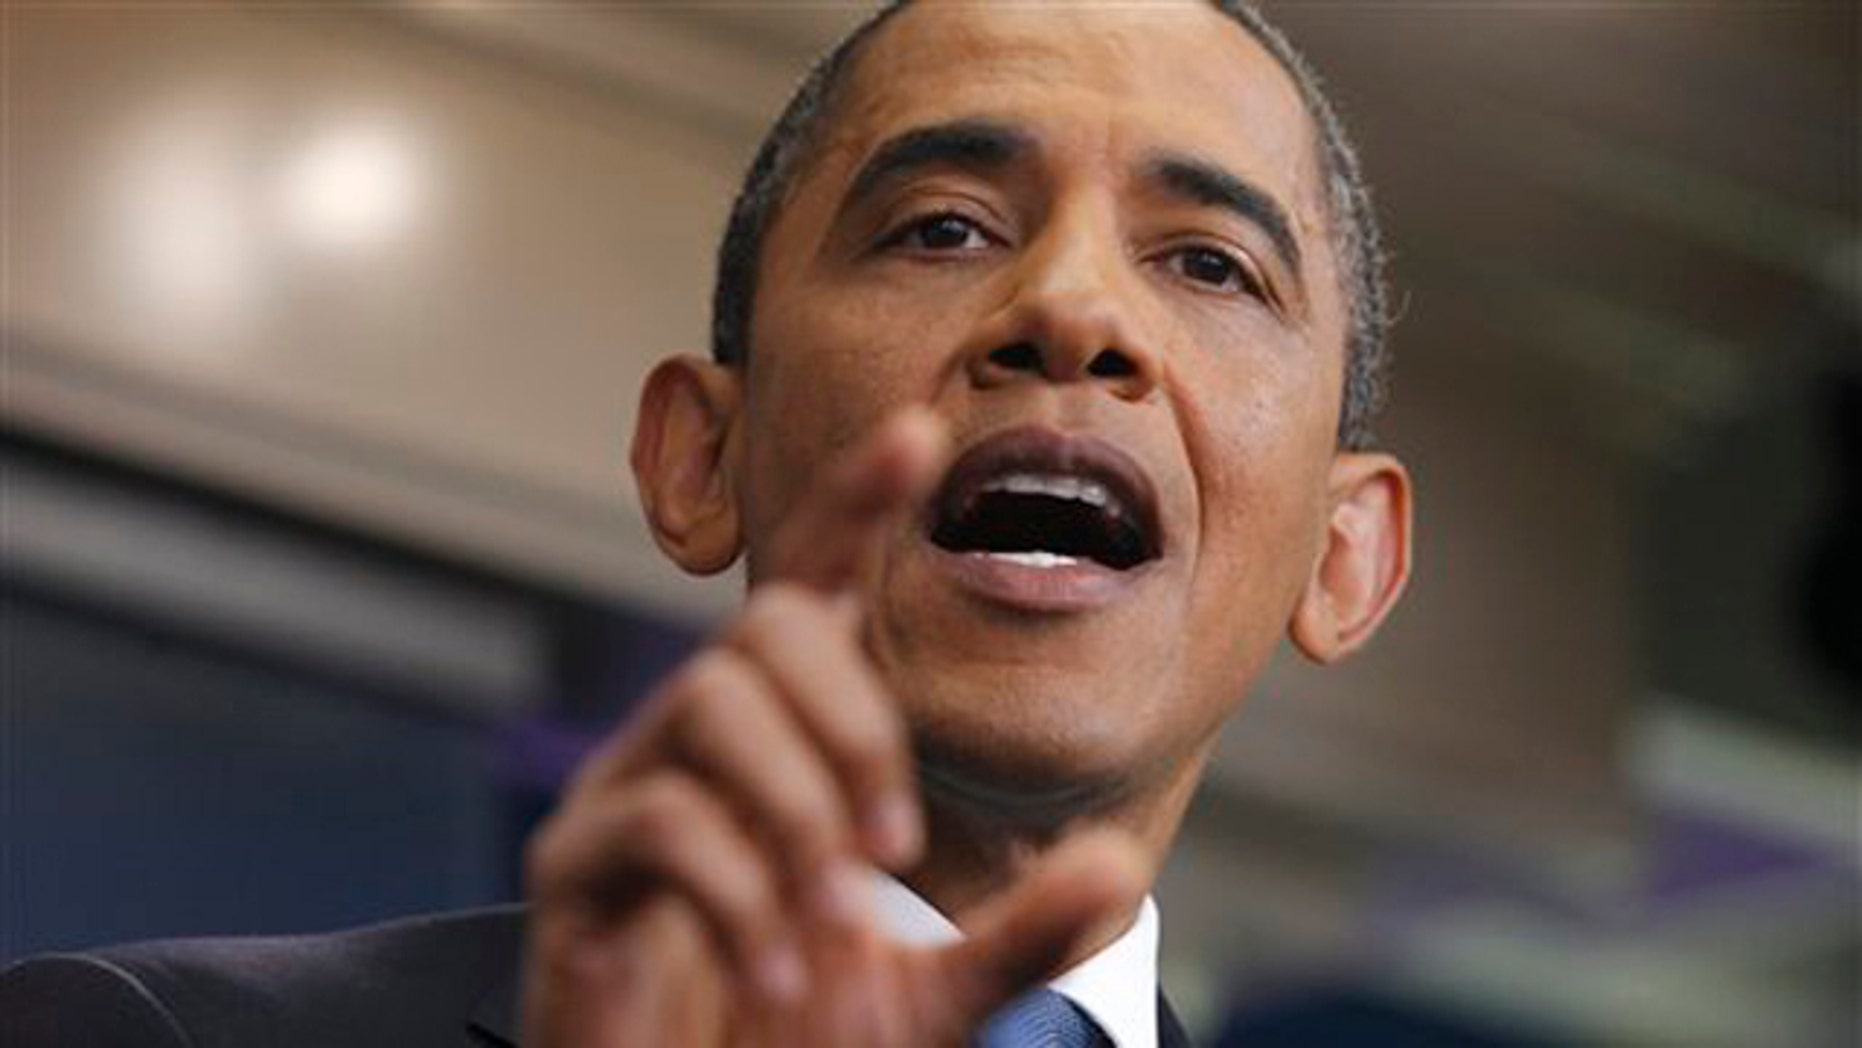 President Obama gestures during a news conference in the James Brady Press Briefing Room of the White House July 11.